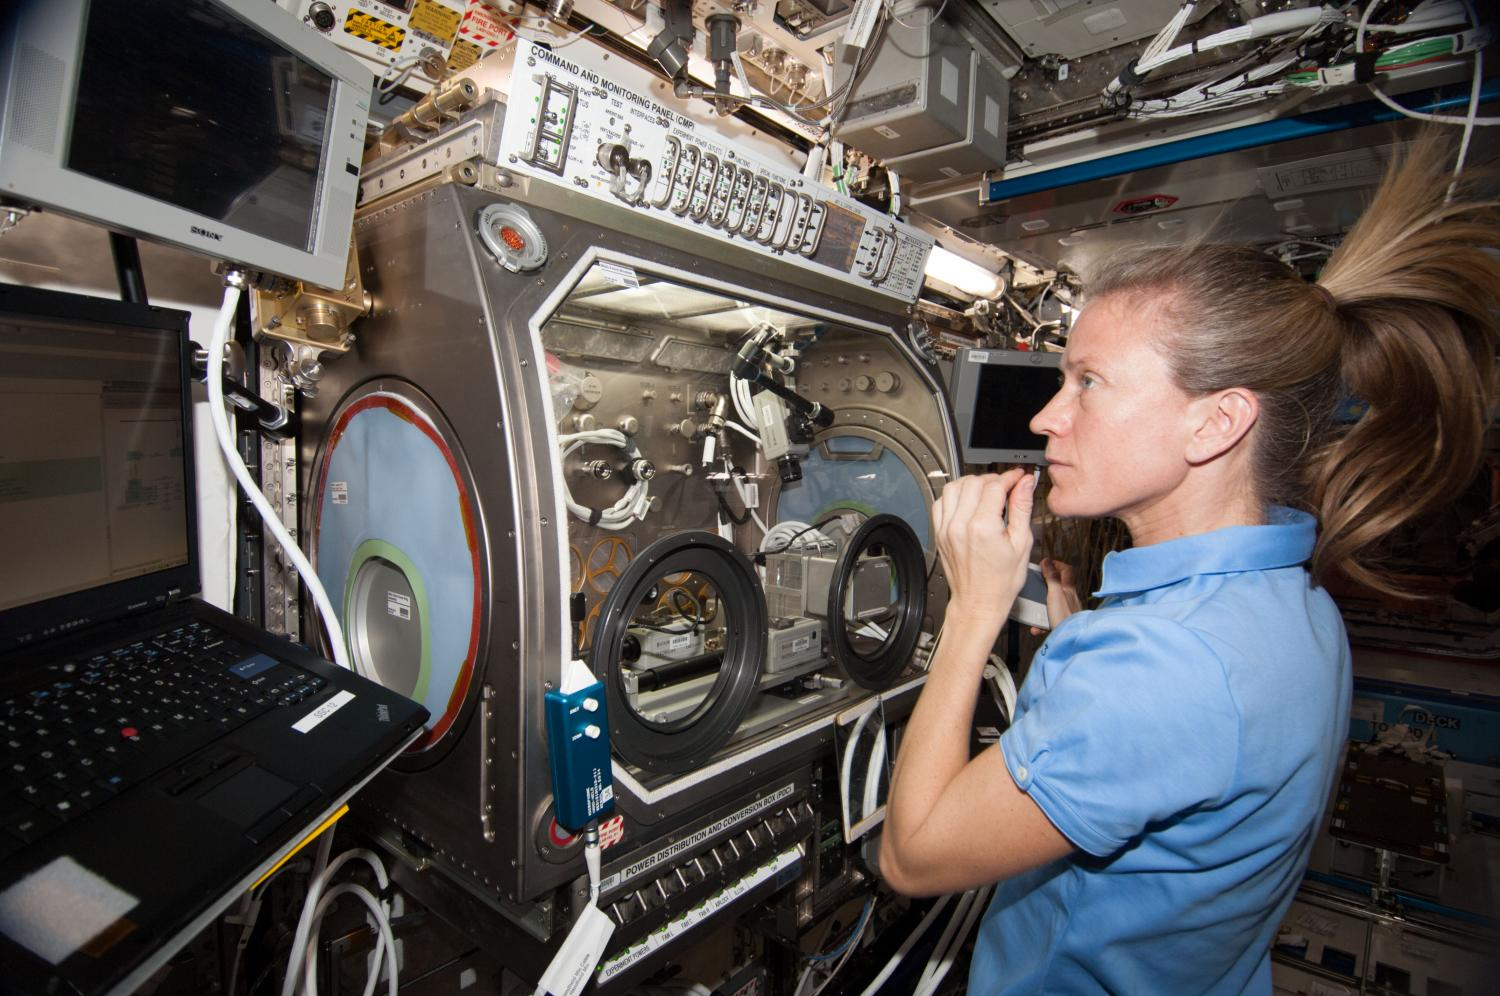 scientific experiments in international space station International space station at the international space station (iss) flying 400 kilometers above the earth, astronauts reside and perform various scientific experiments.